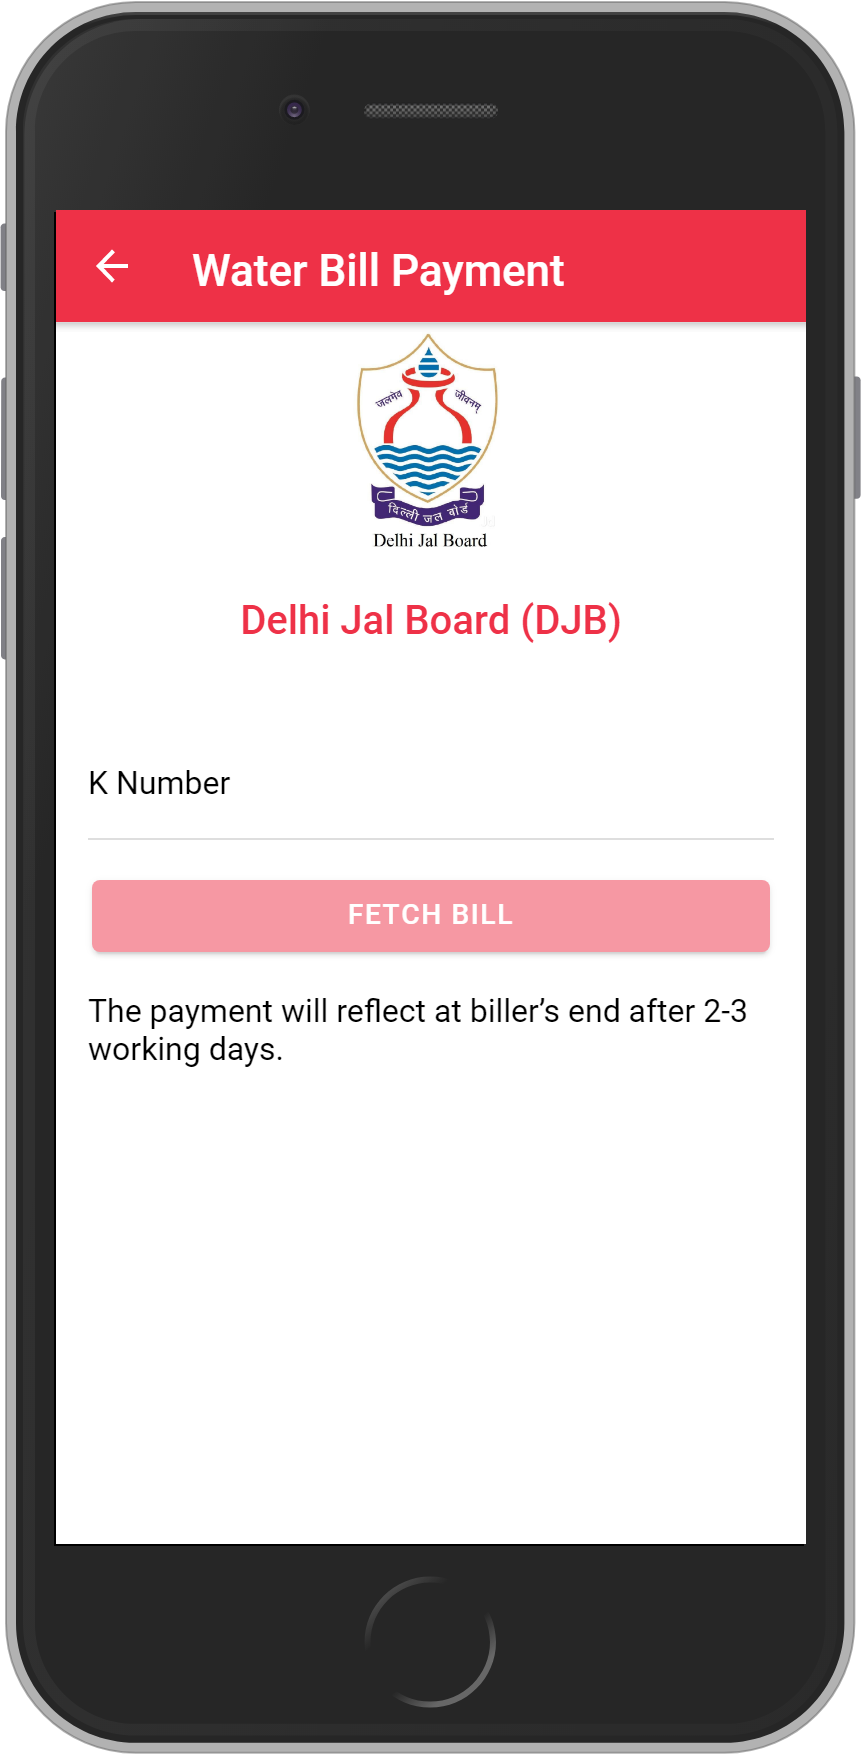 Get UNLIMITED <b>0.1%</b> CASHBACK on Delhi Jal Board (DJB) Bill Payment.